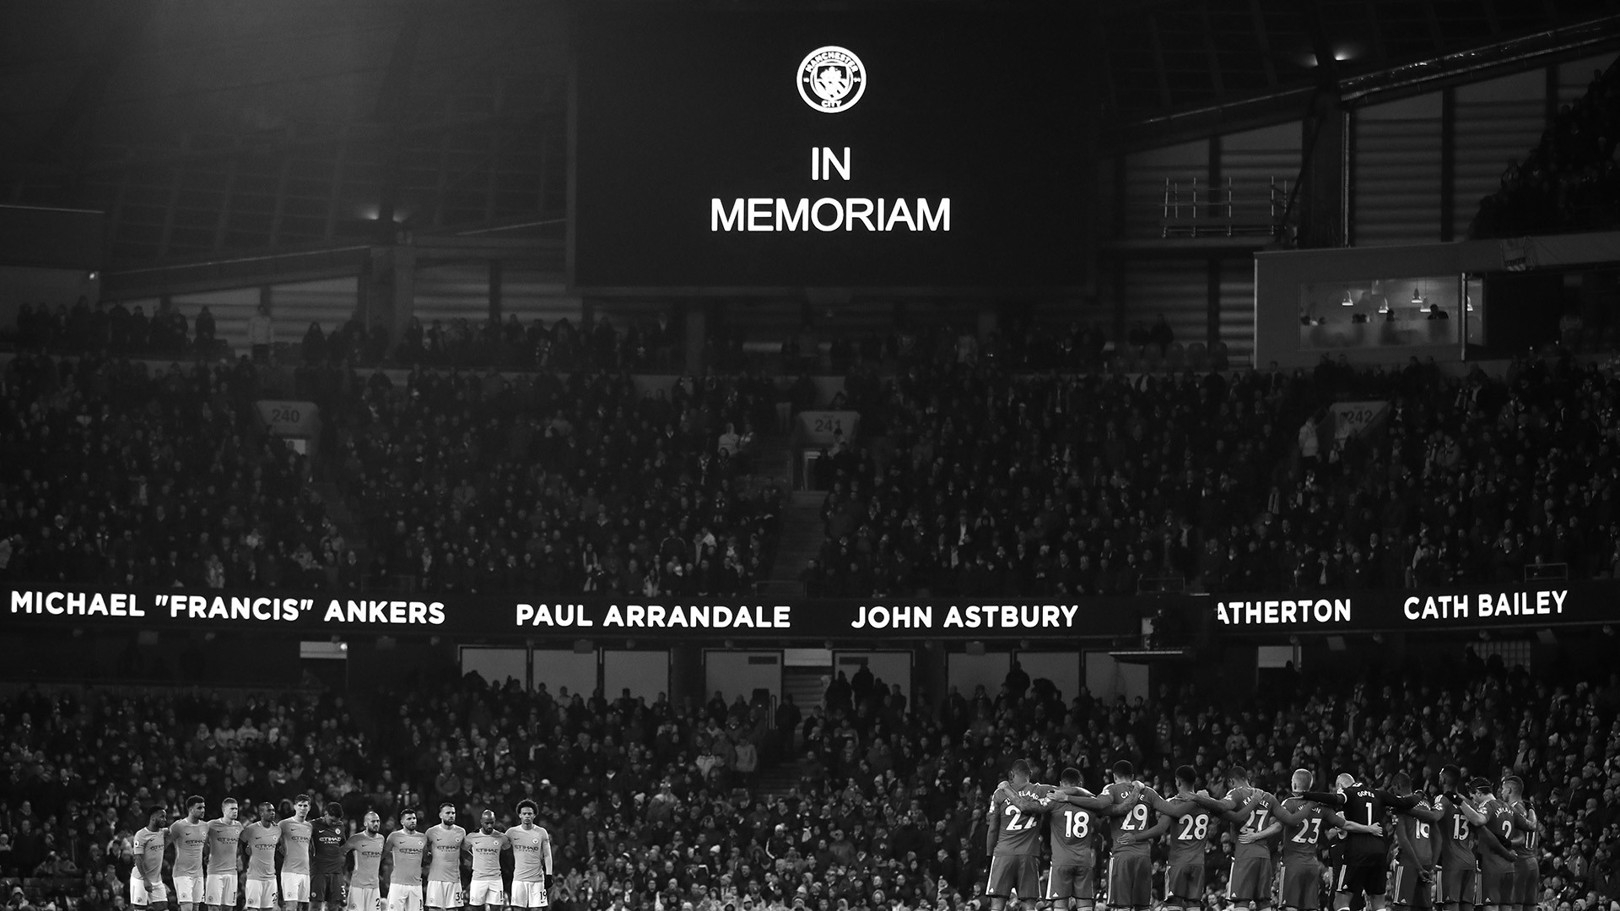 MEMORIAL GAME: This year we will remmeber those connected to the Club who have passed at the game against Crystal Palace